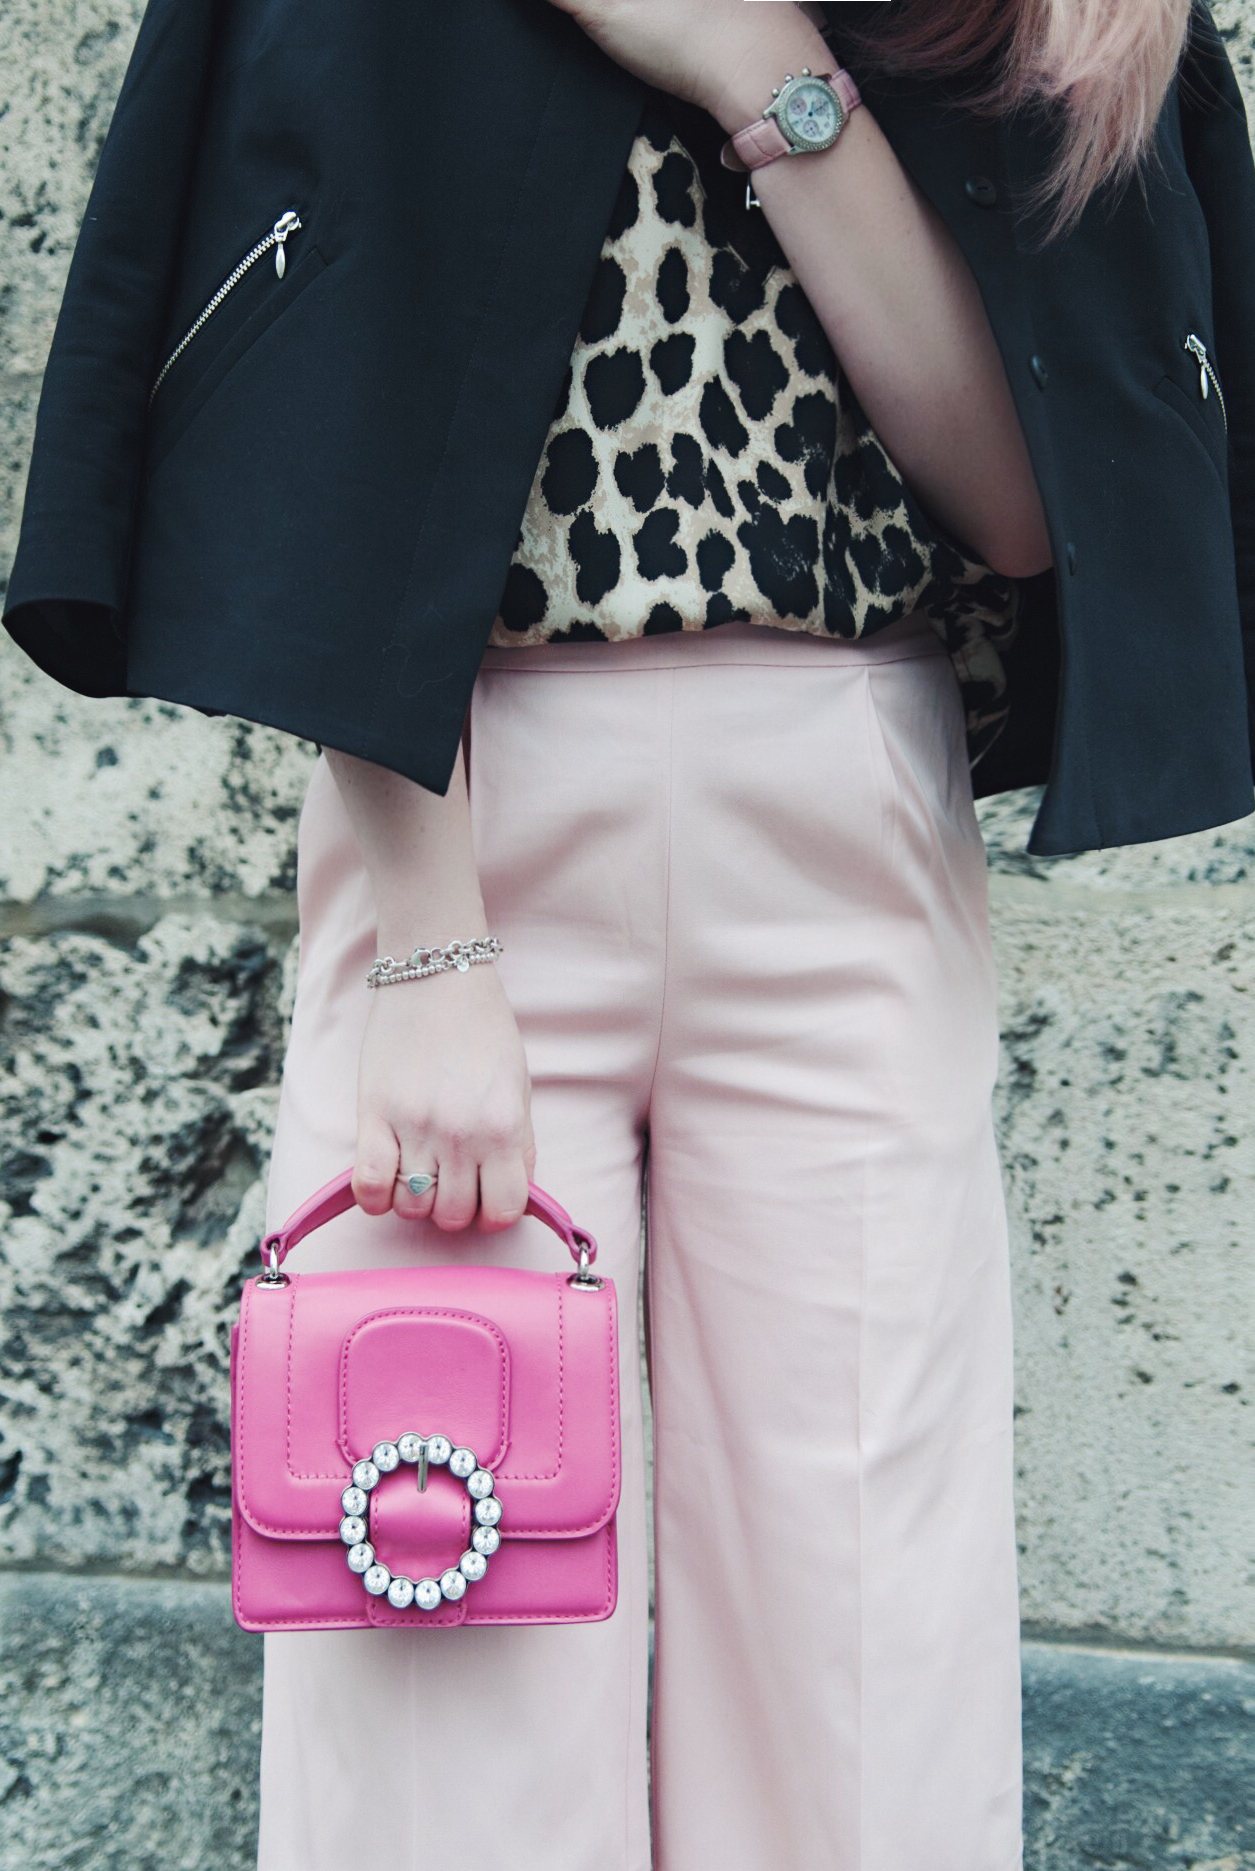 Marc Jacobs, Kolumne, Pink, Tasche, Pineapples and Pumps, Fashion Blog, Lifestyle, Muenchen, Munich, Tom Ford, Pumps, Jette Joop